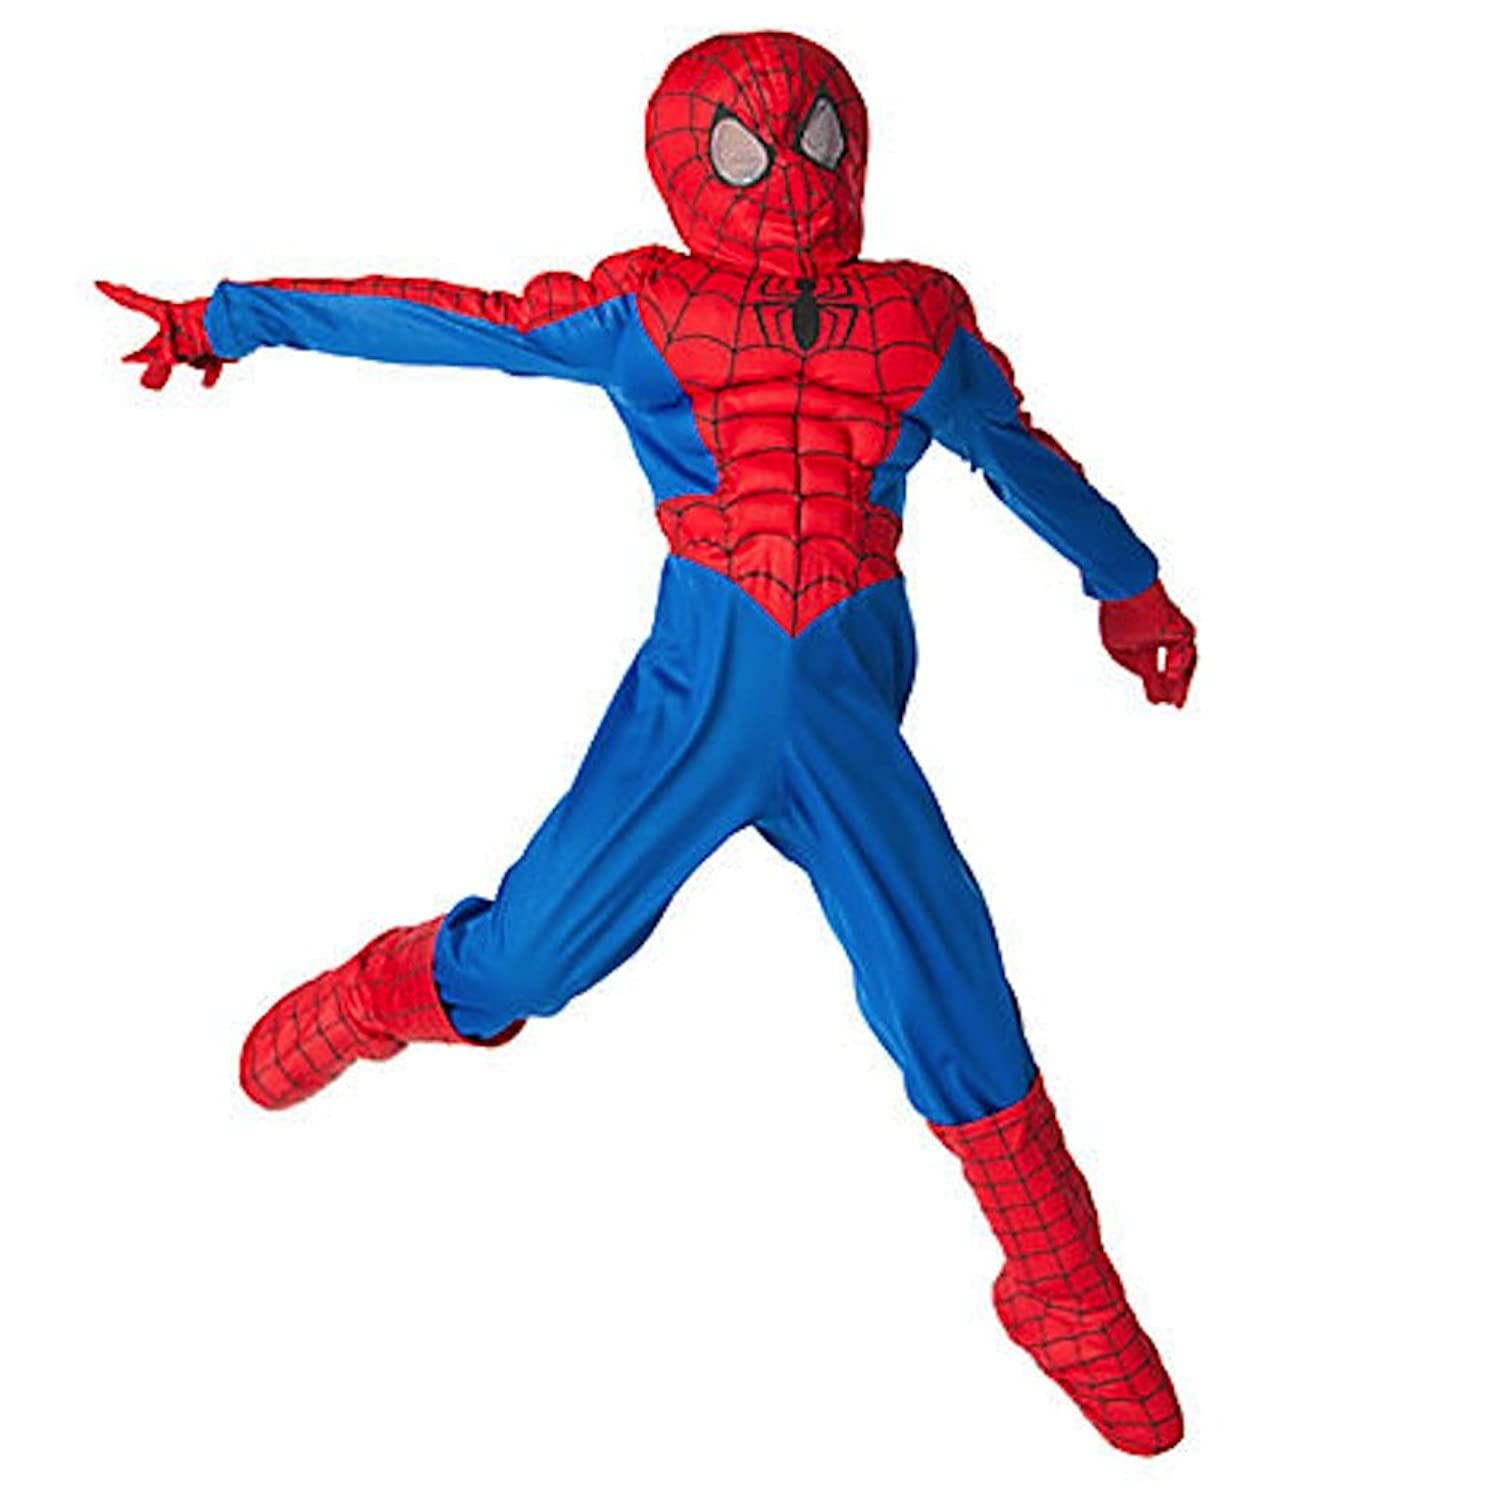 Amazon.com Disney Store Spider-man Costume for Boys Amazing Spiderman (L 10-12 Large) Clothing  sc 1 st  Amazon.com & Amazon.com: Disney Store Spider-man Costume for Boys Amazing ...